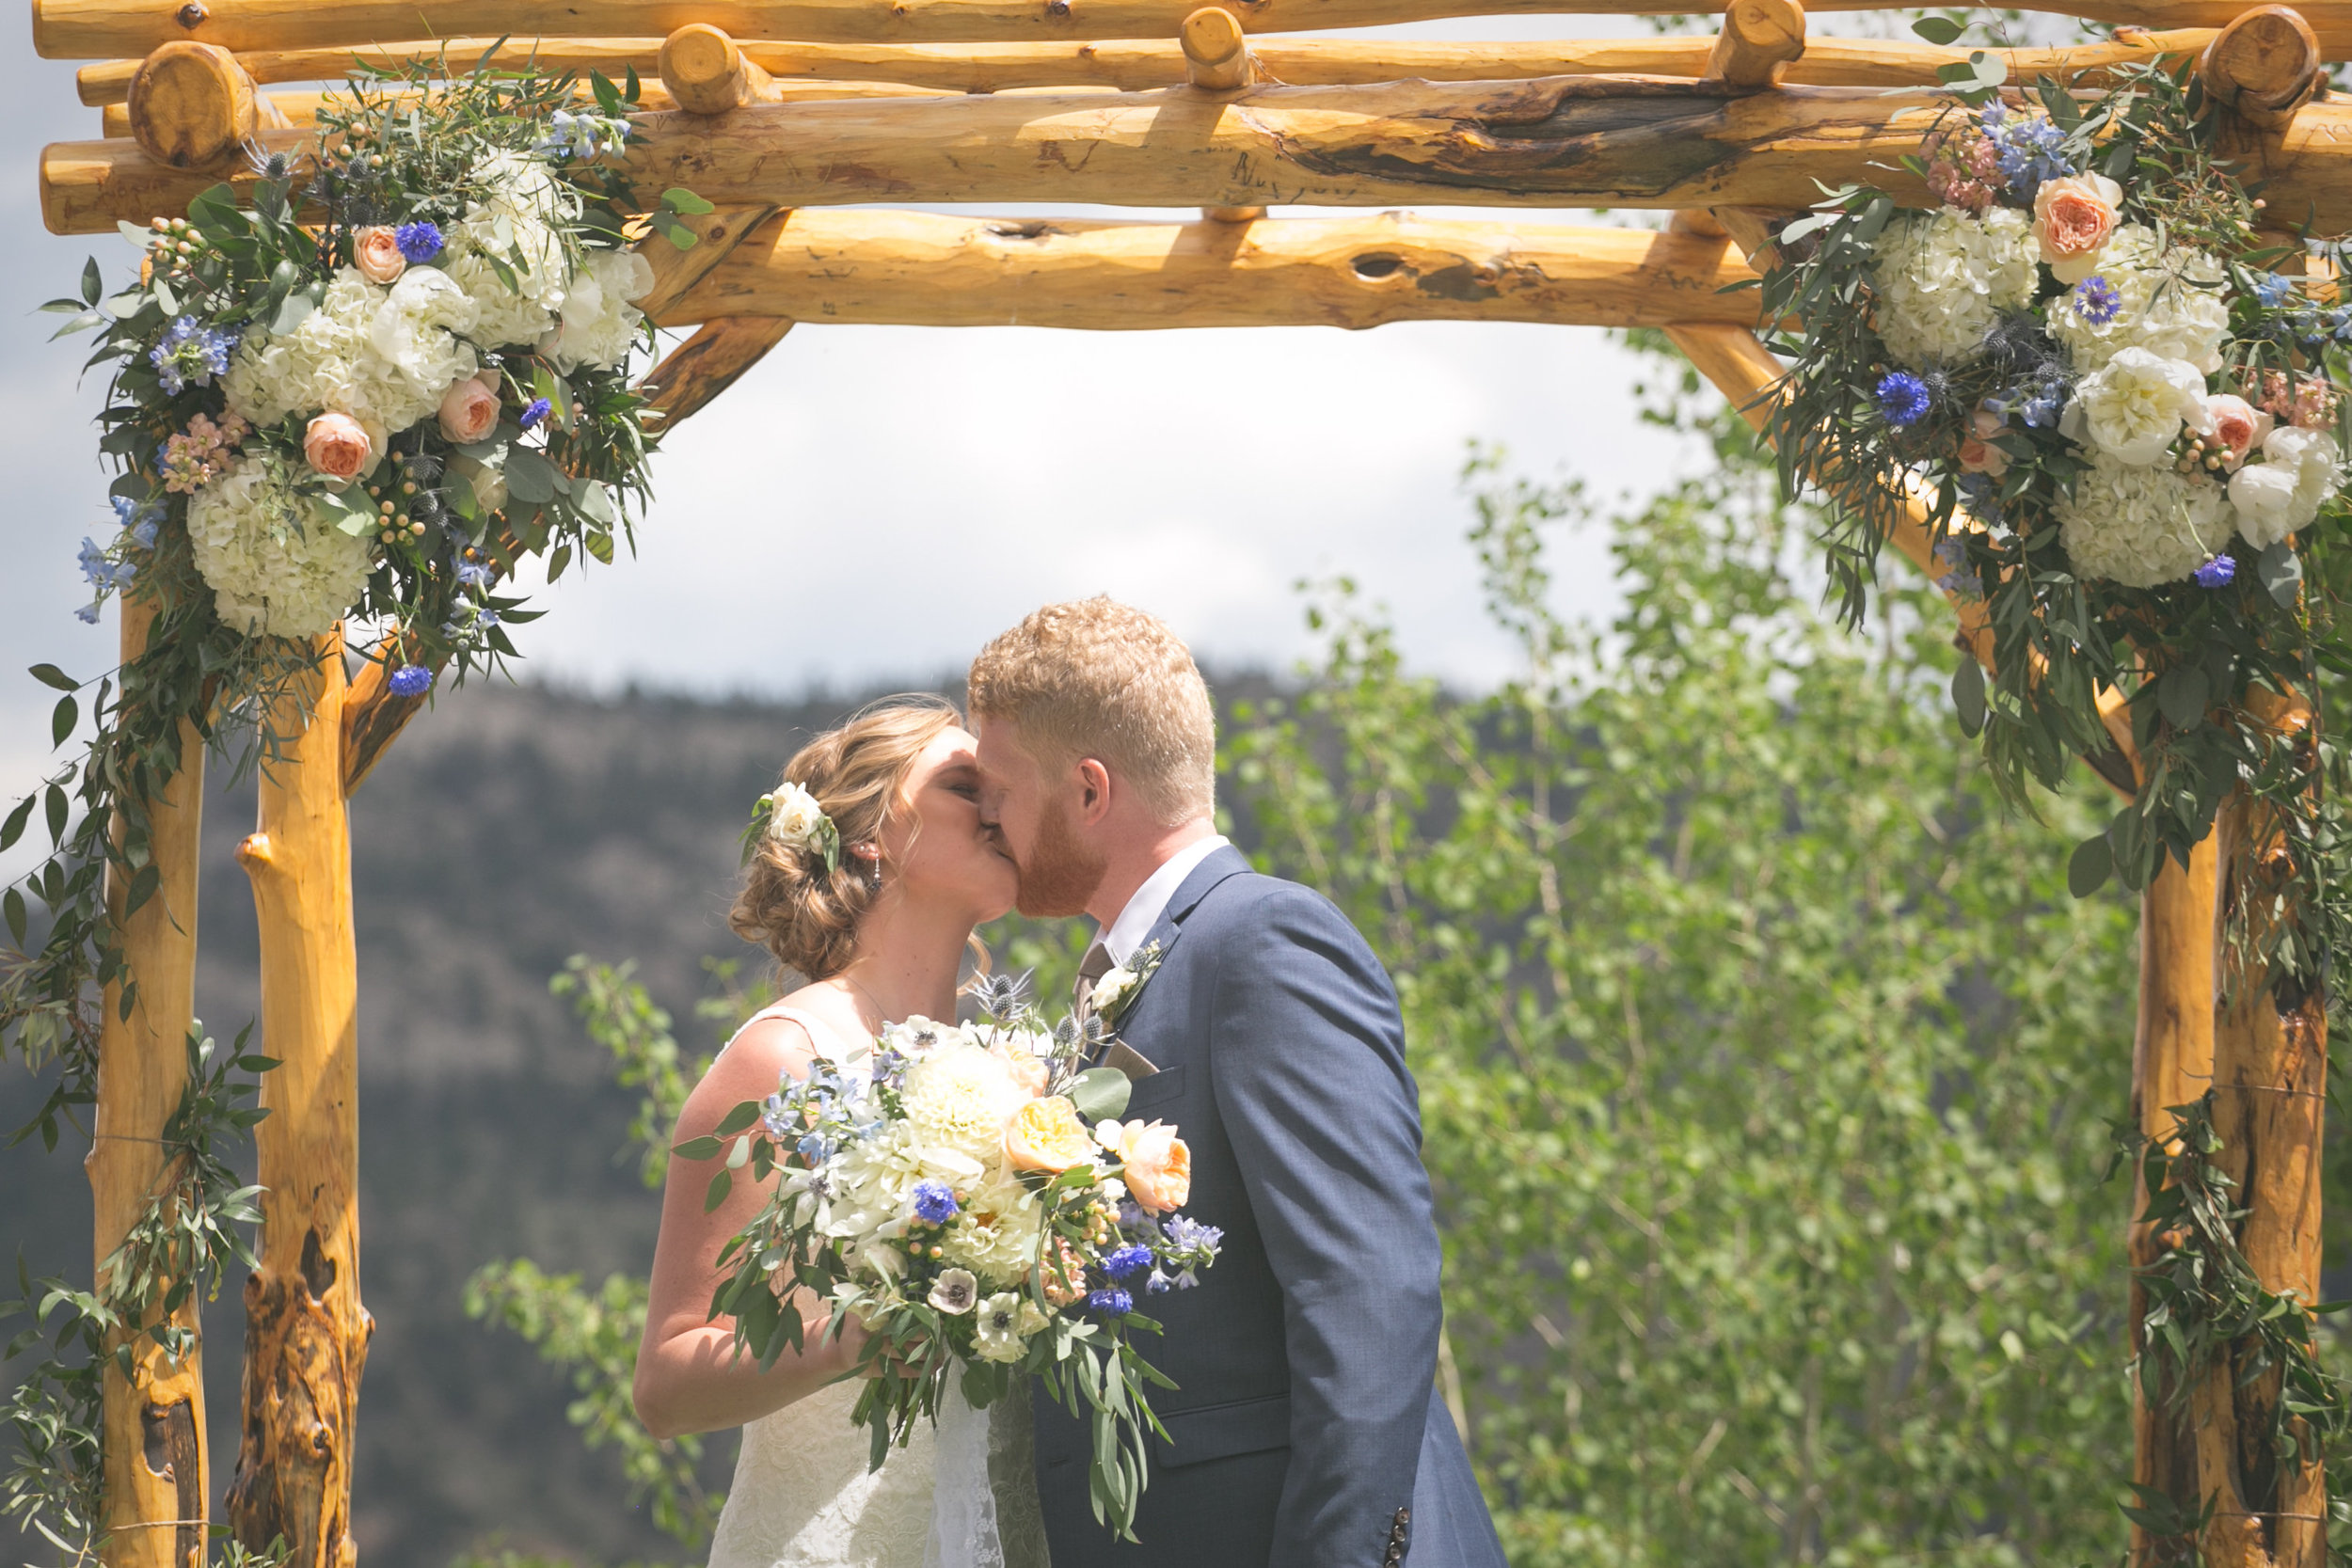 Flowers by Lace and Lilies, ceremony flowers, denver wedding, arch flowers, colorful bloom, wooden arch, ceremony decor, marys lake lodge, estes park wedding